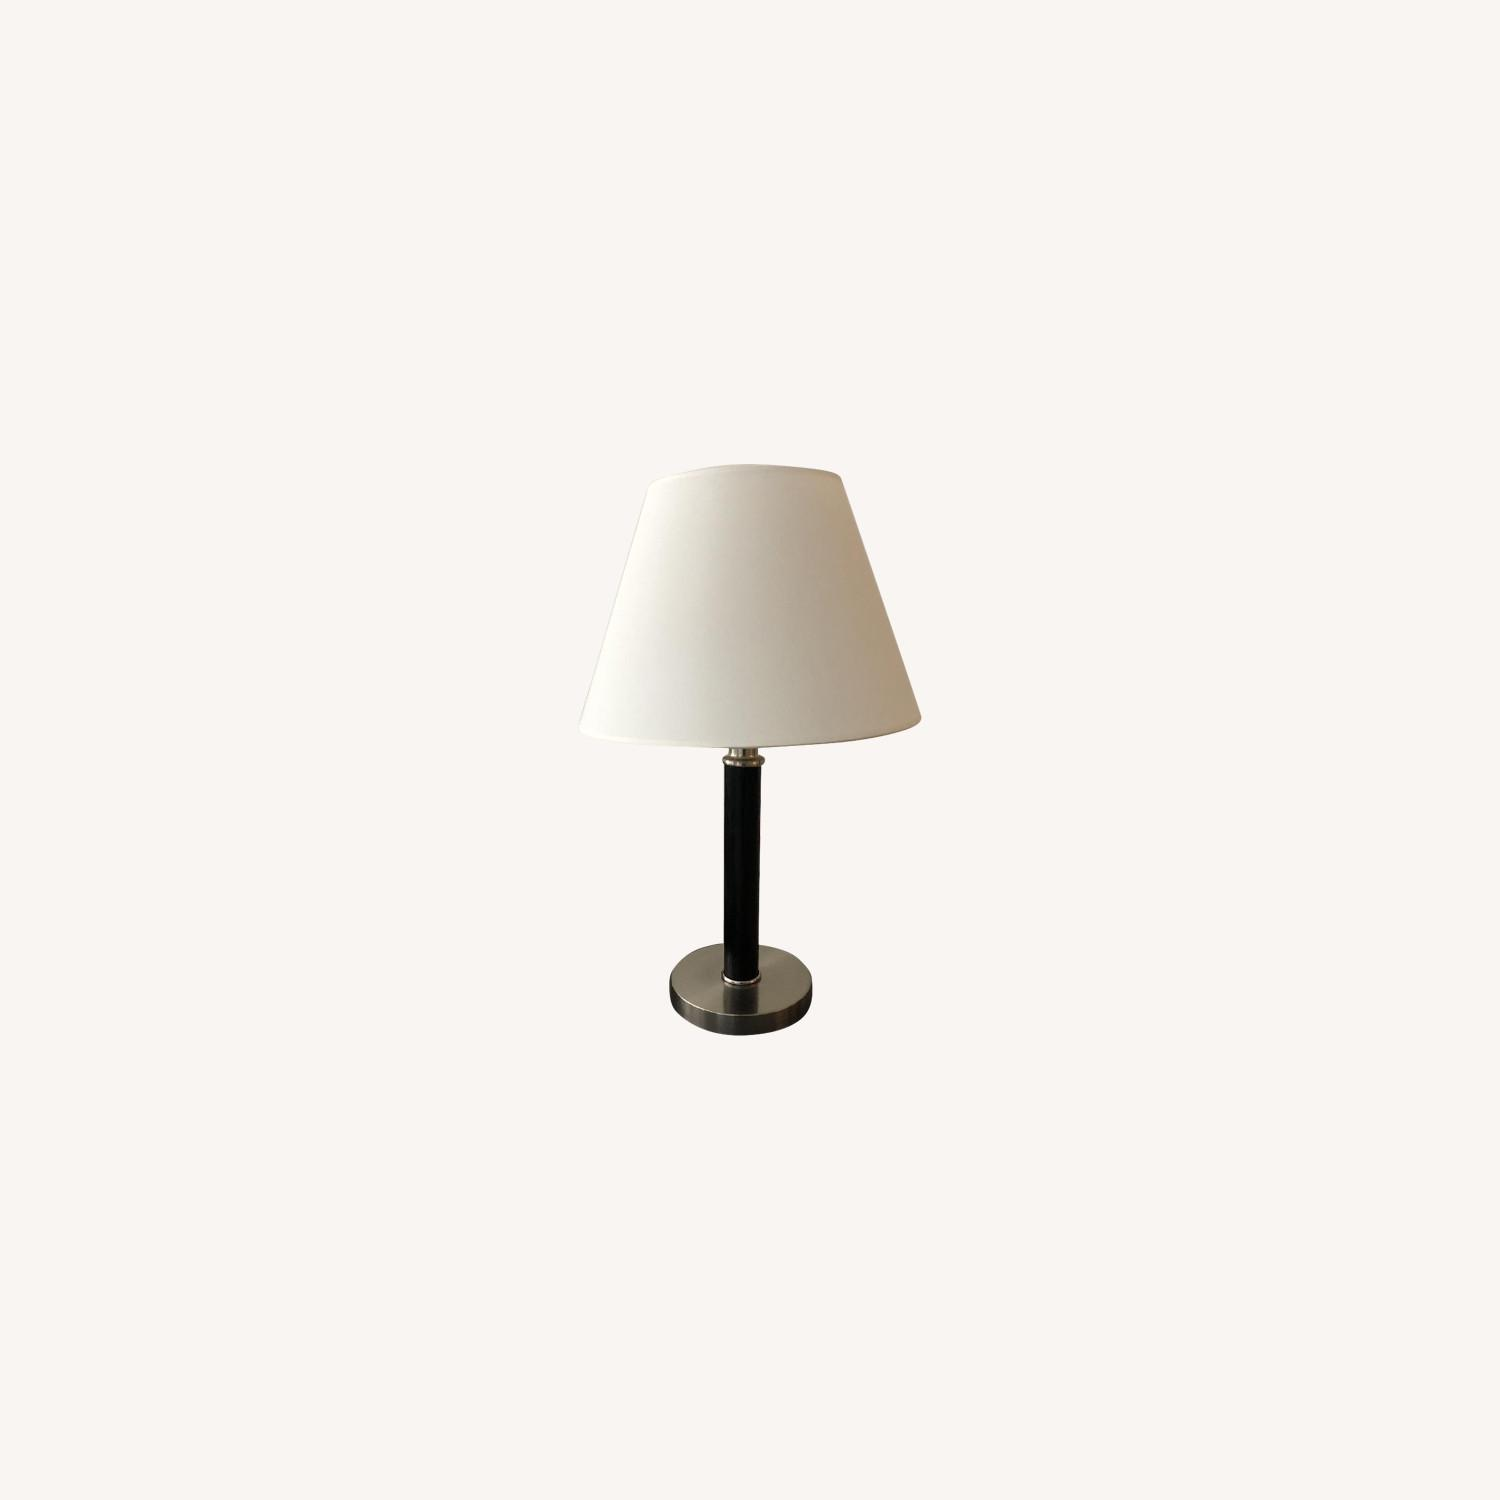 Ethan Allen Chrome Table Lamp in Wood Finish - image-0